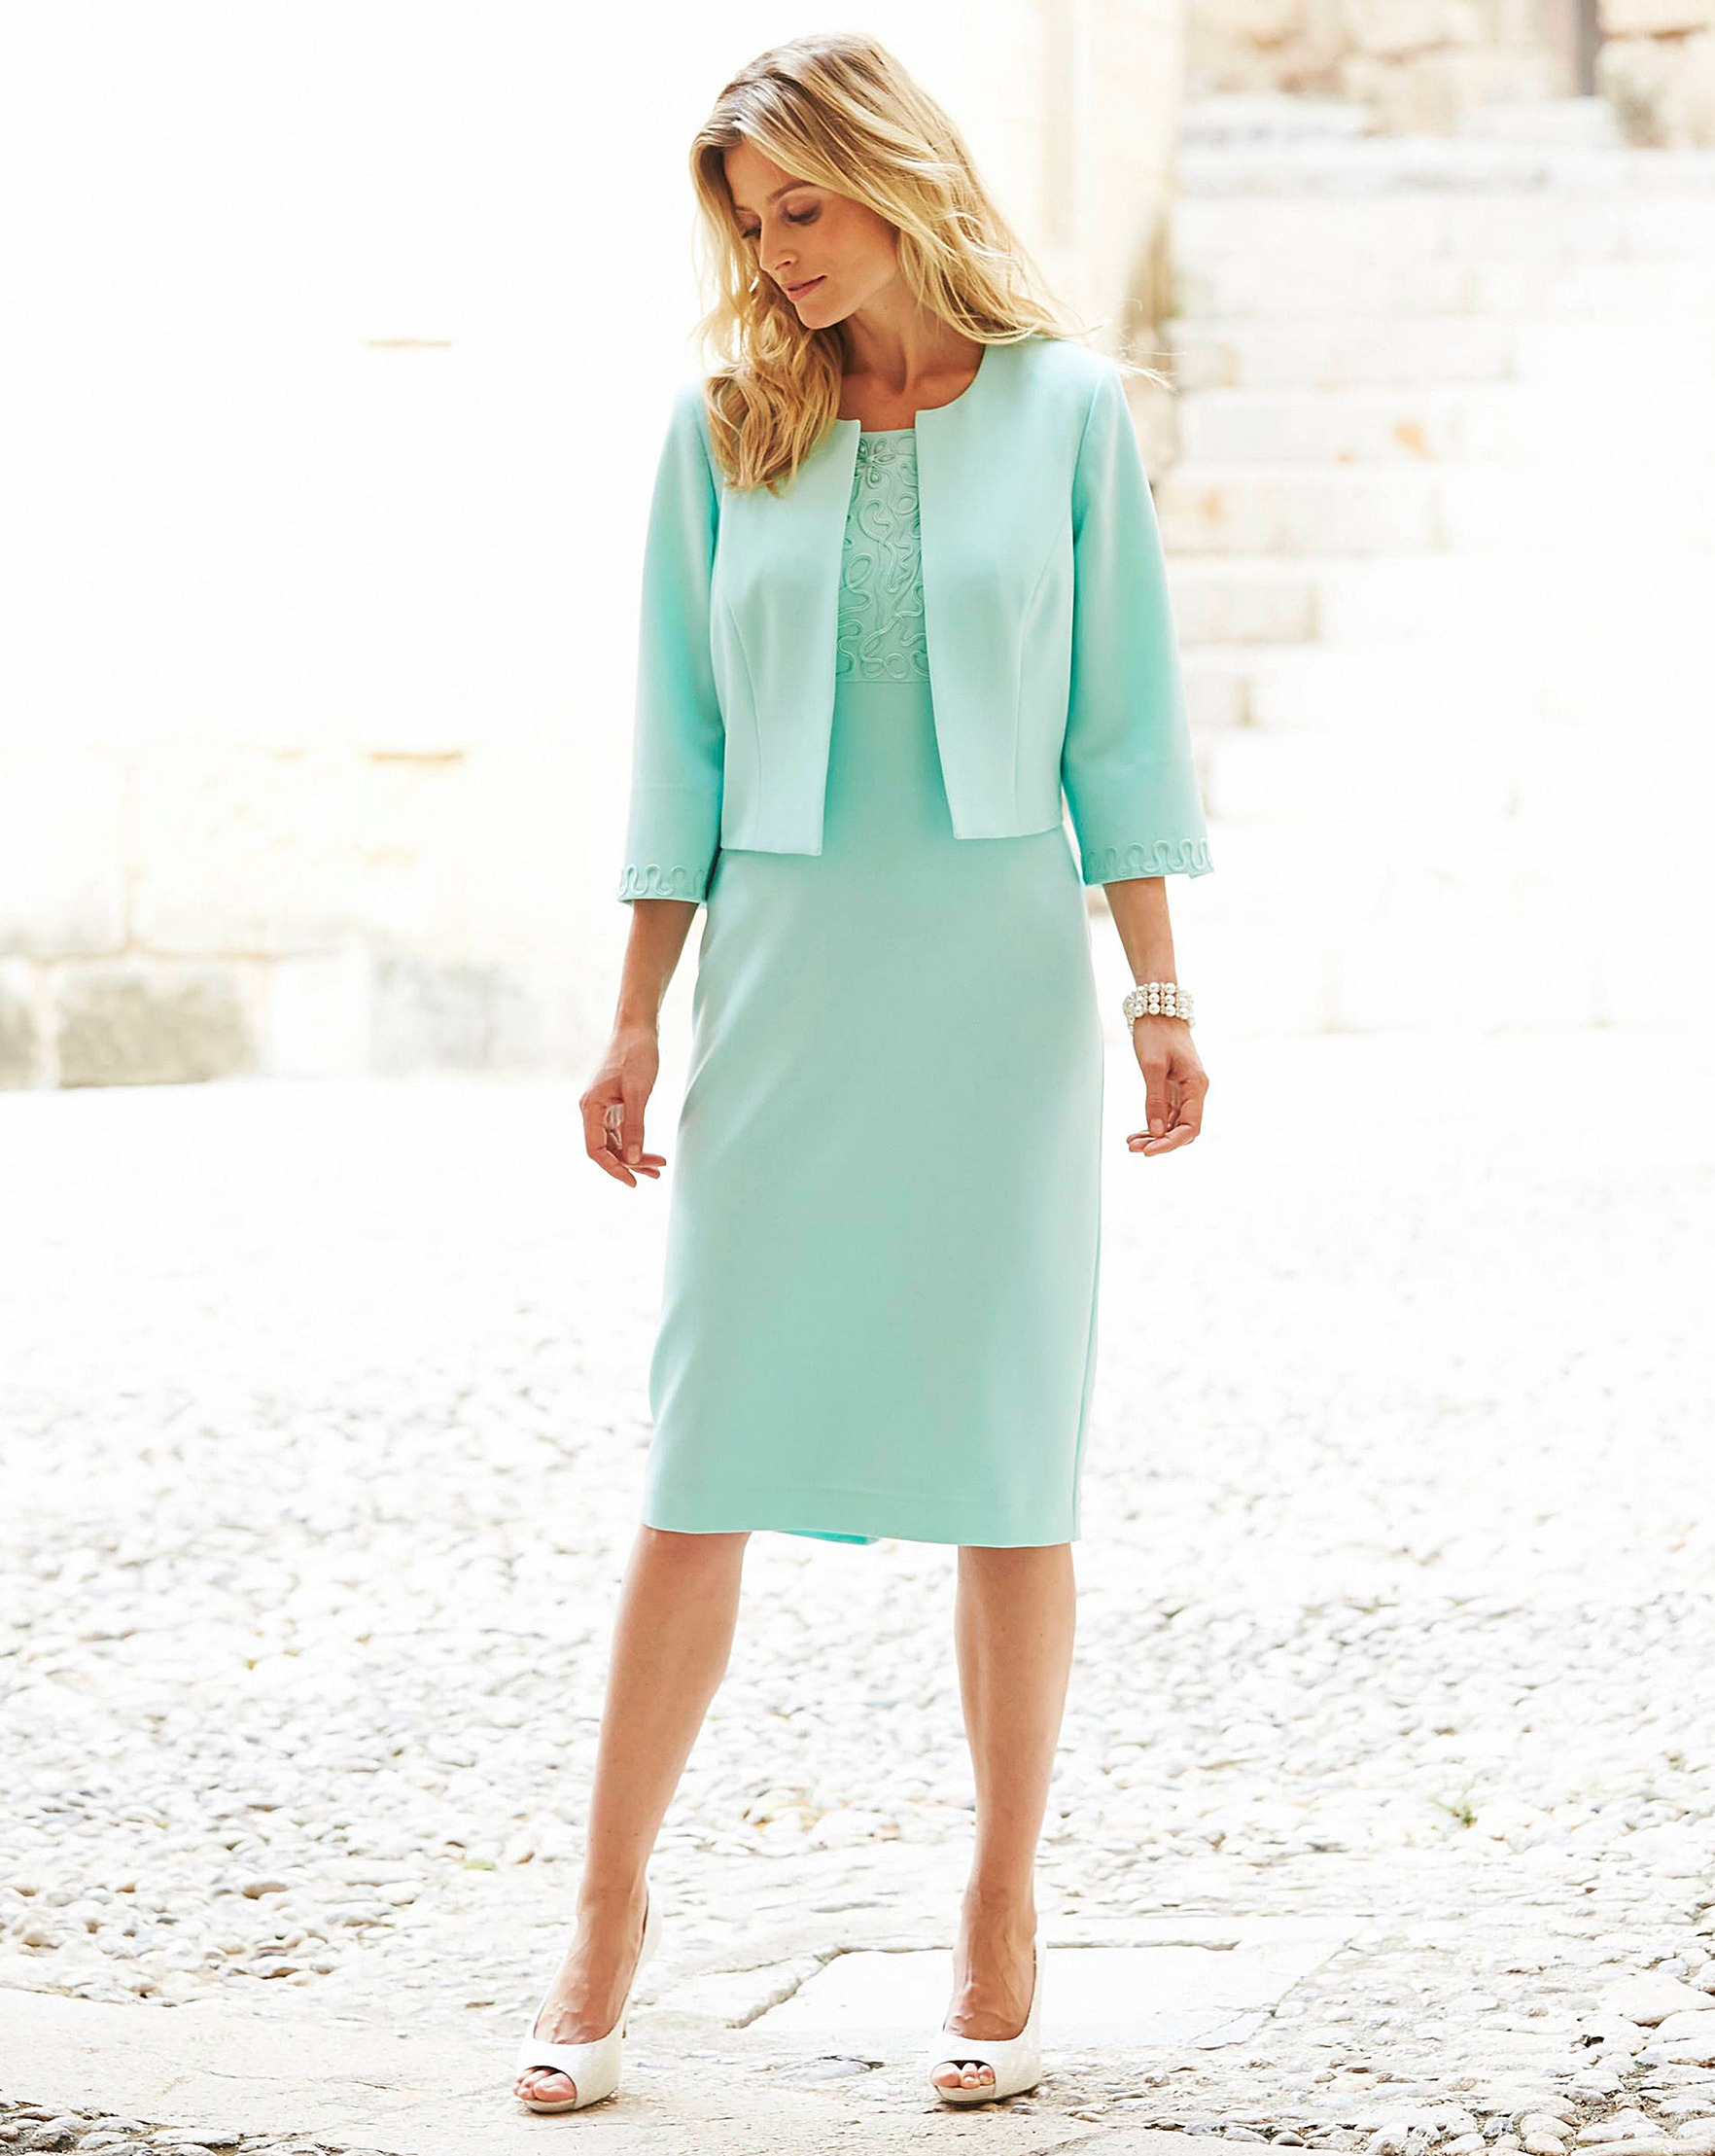 JOANNA HOPE Dress and Jacket | J D Williams